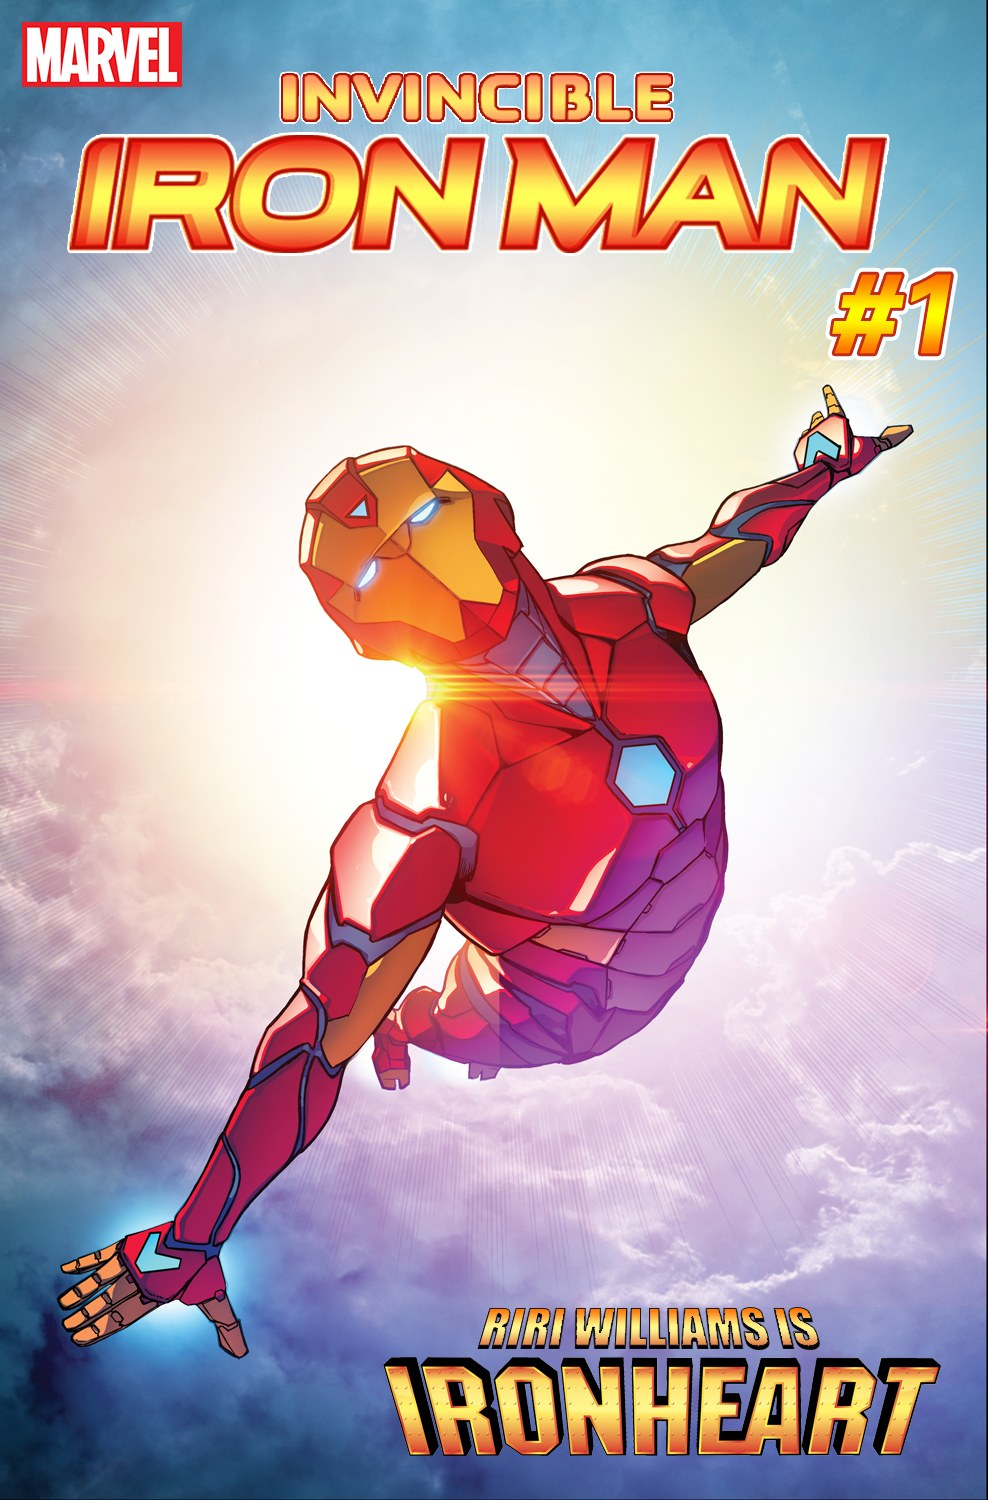 Riri's IronHeart Replaces Tony Stark As The New Iron Man